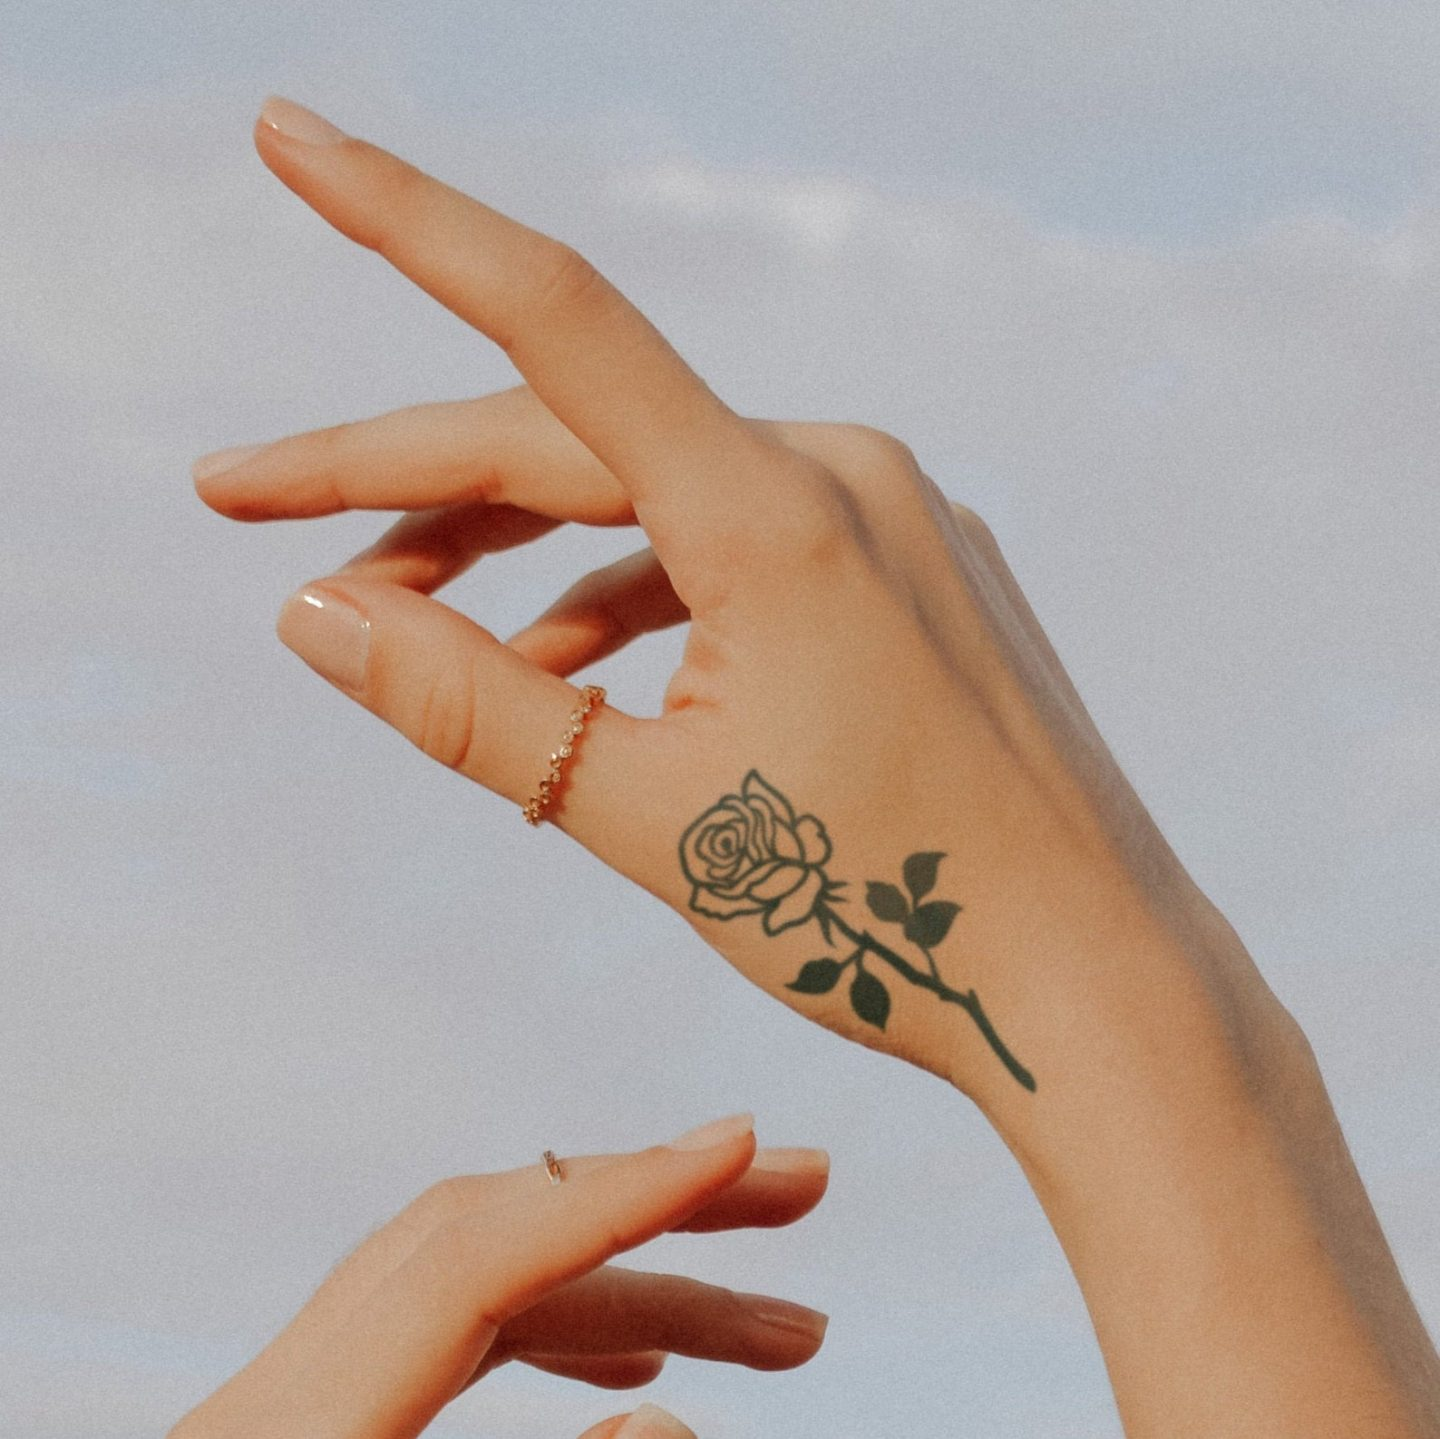 Cute rose tattoo for the hand